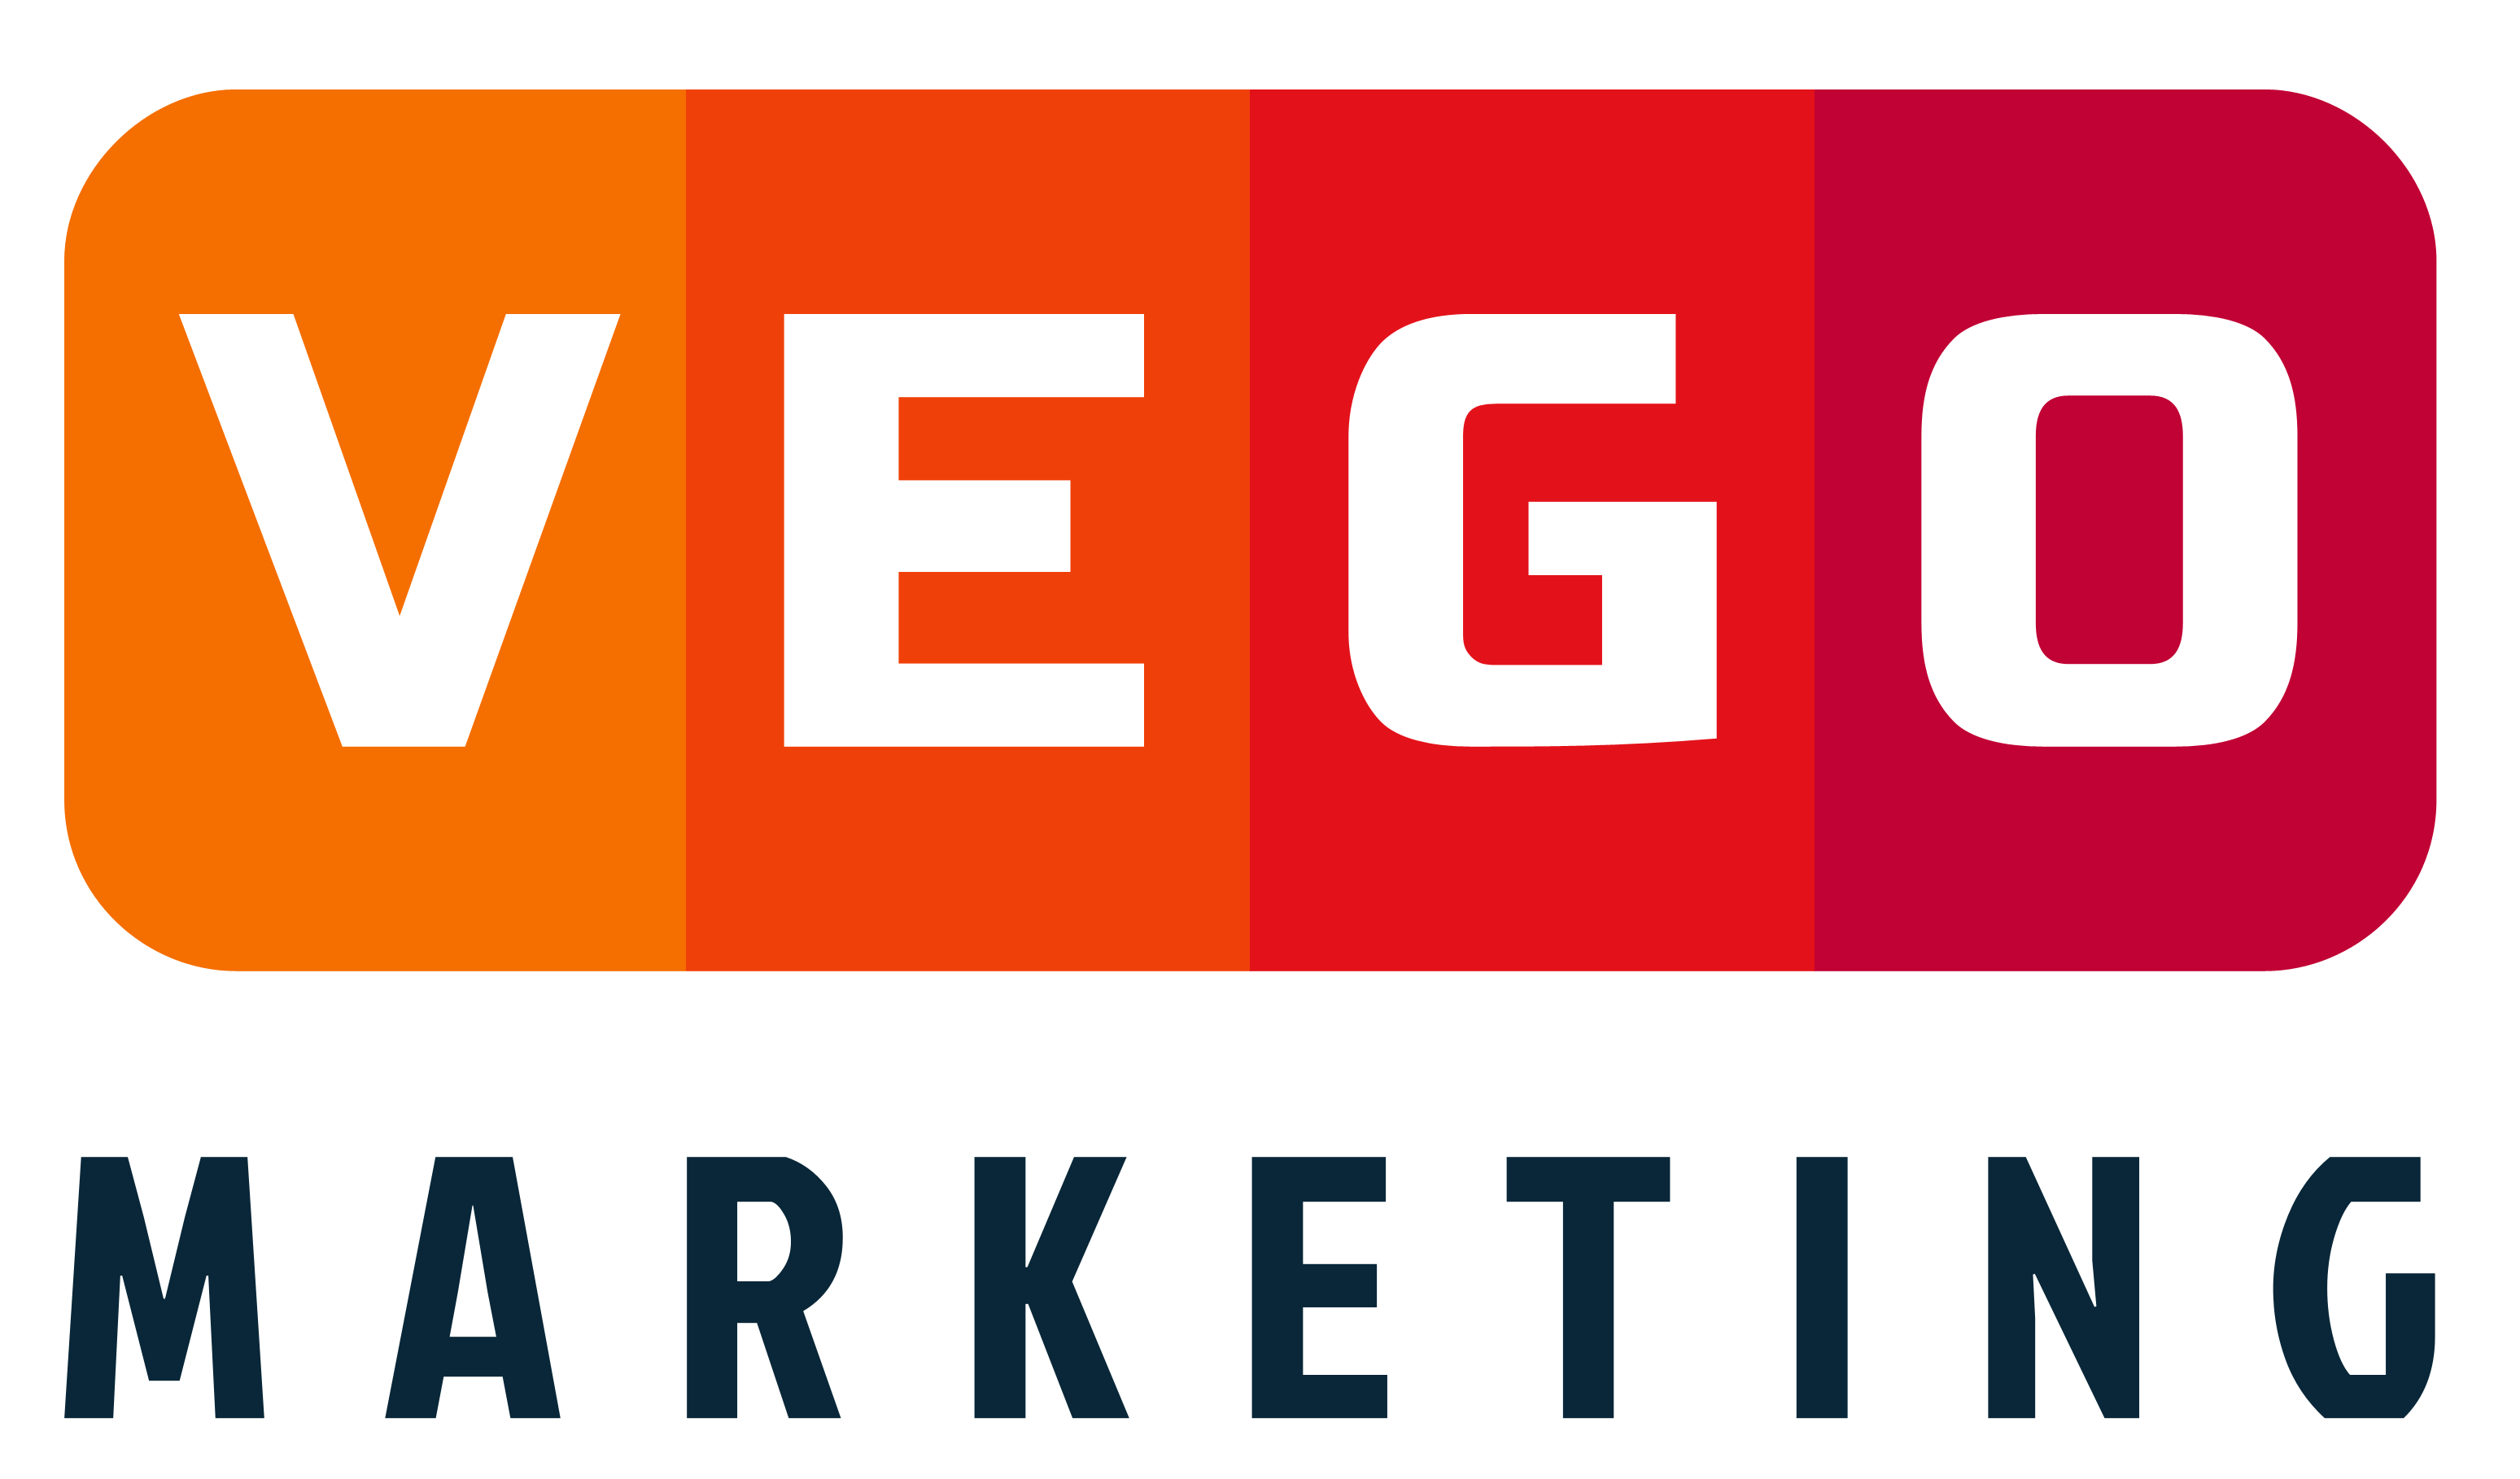 logo vego marketing farebne